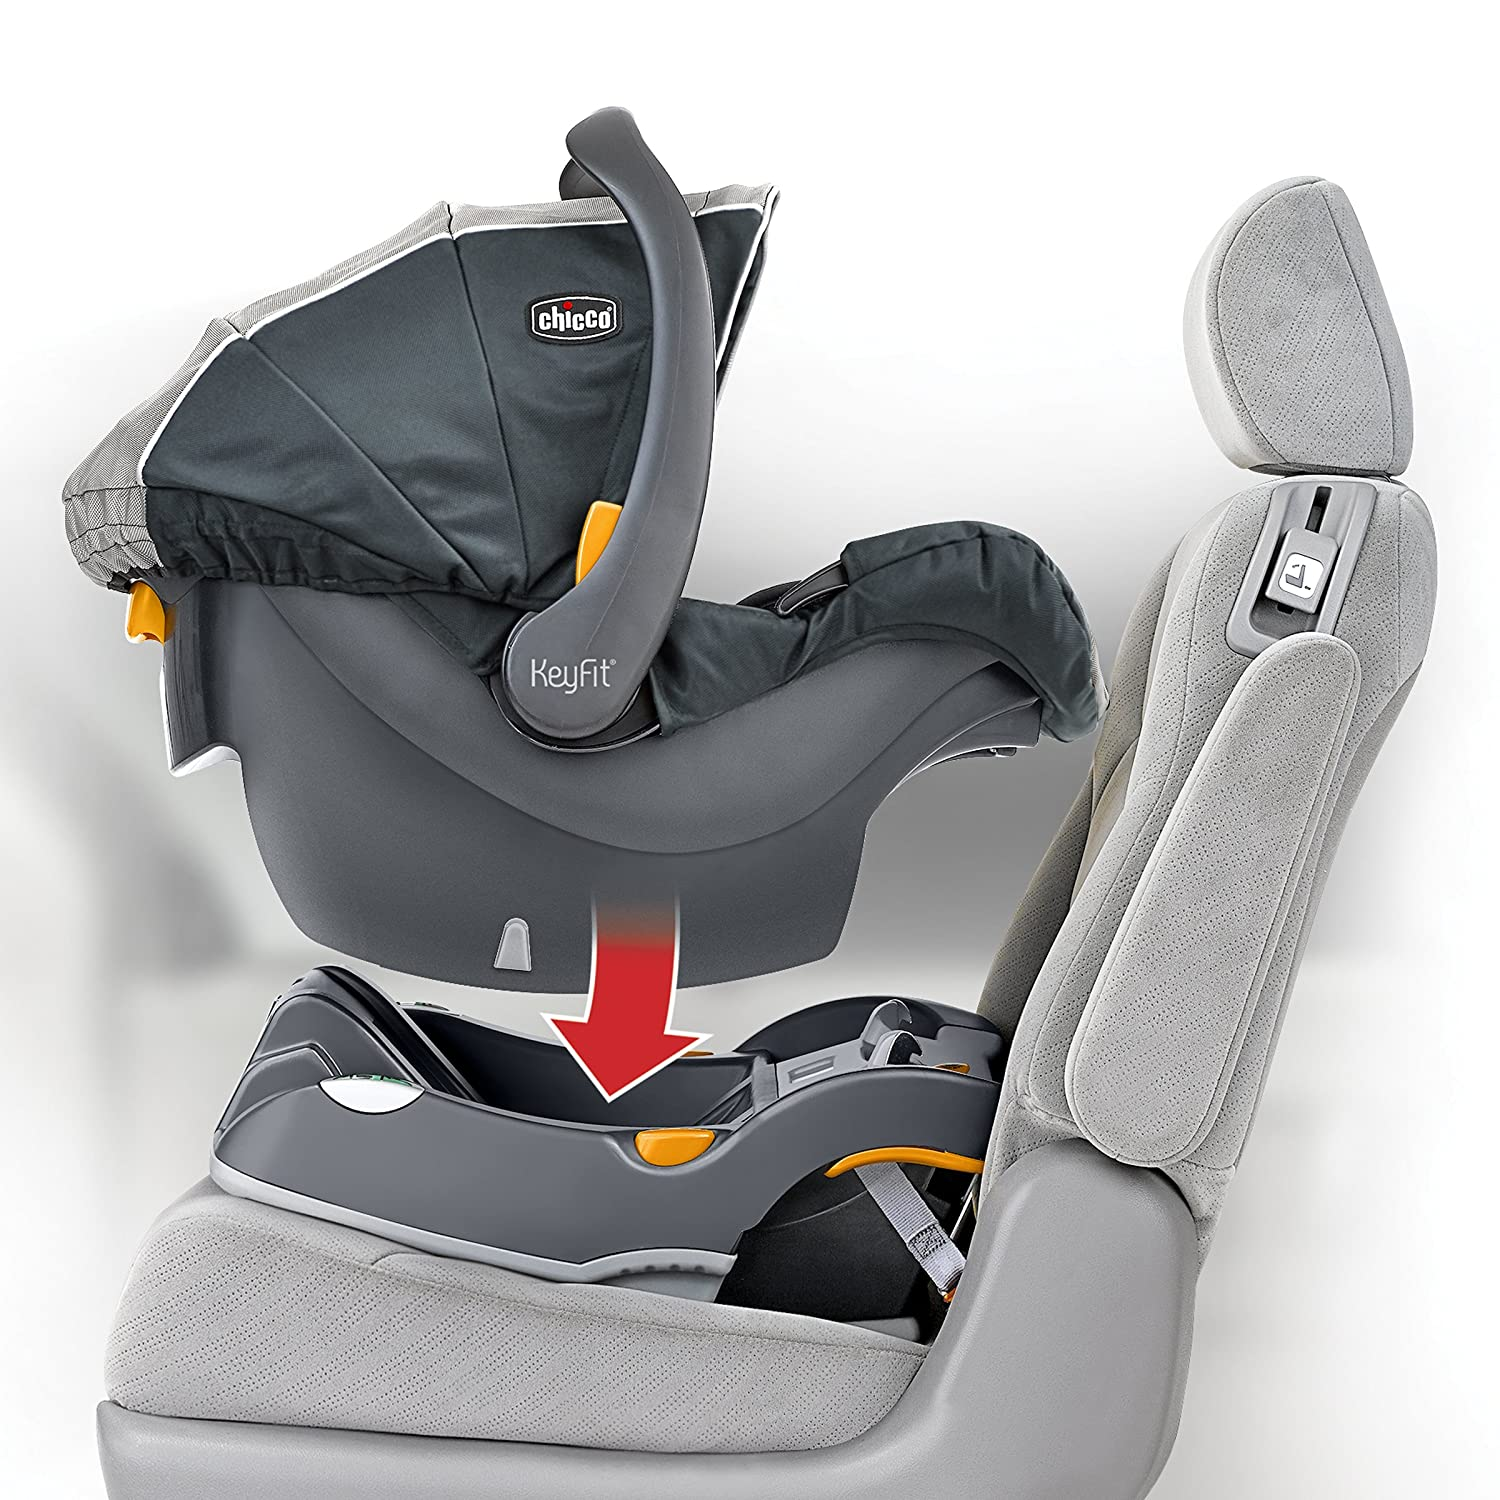 With Its Sturdy Design And Fully Body Support It Has Also Been Among The Best Selling Compact Car Seats For Small Vehicles